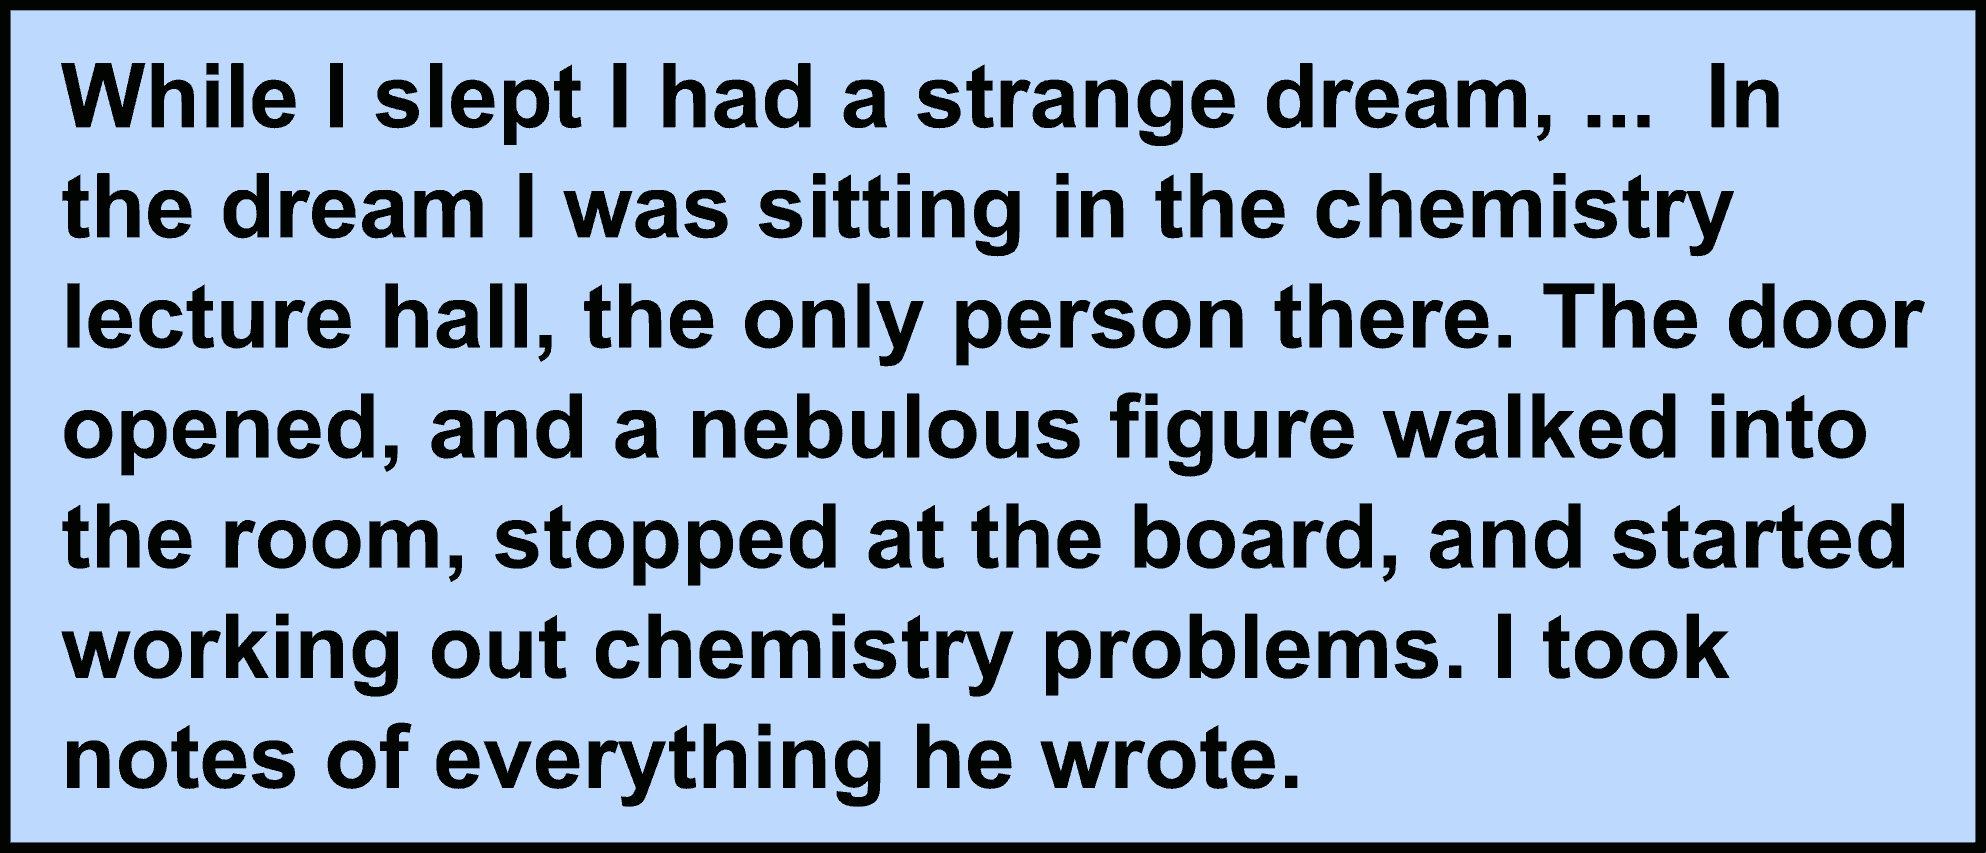 While I slept I had a strange dream. ... In the dream I was sitting in the chemistry lecture hall, the only person there. The door opened, and a nebulous figure walked into the room, stopped at the board, and started working out chemistry problems. I took notes of everything he wrote.